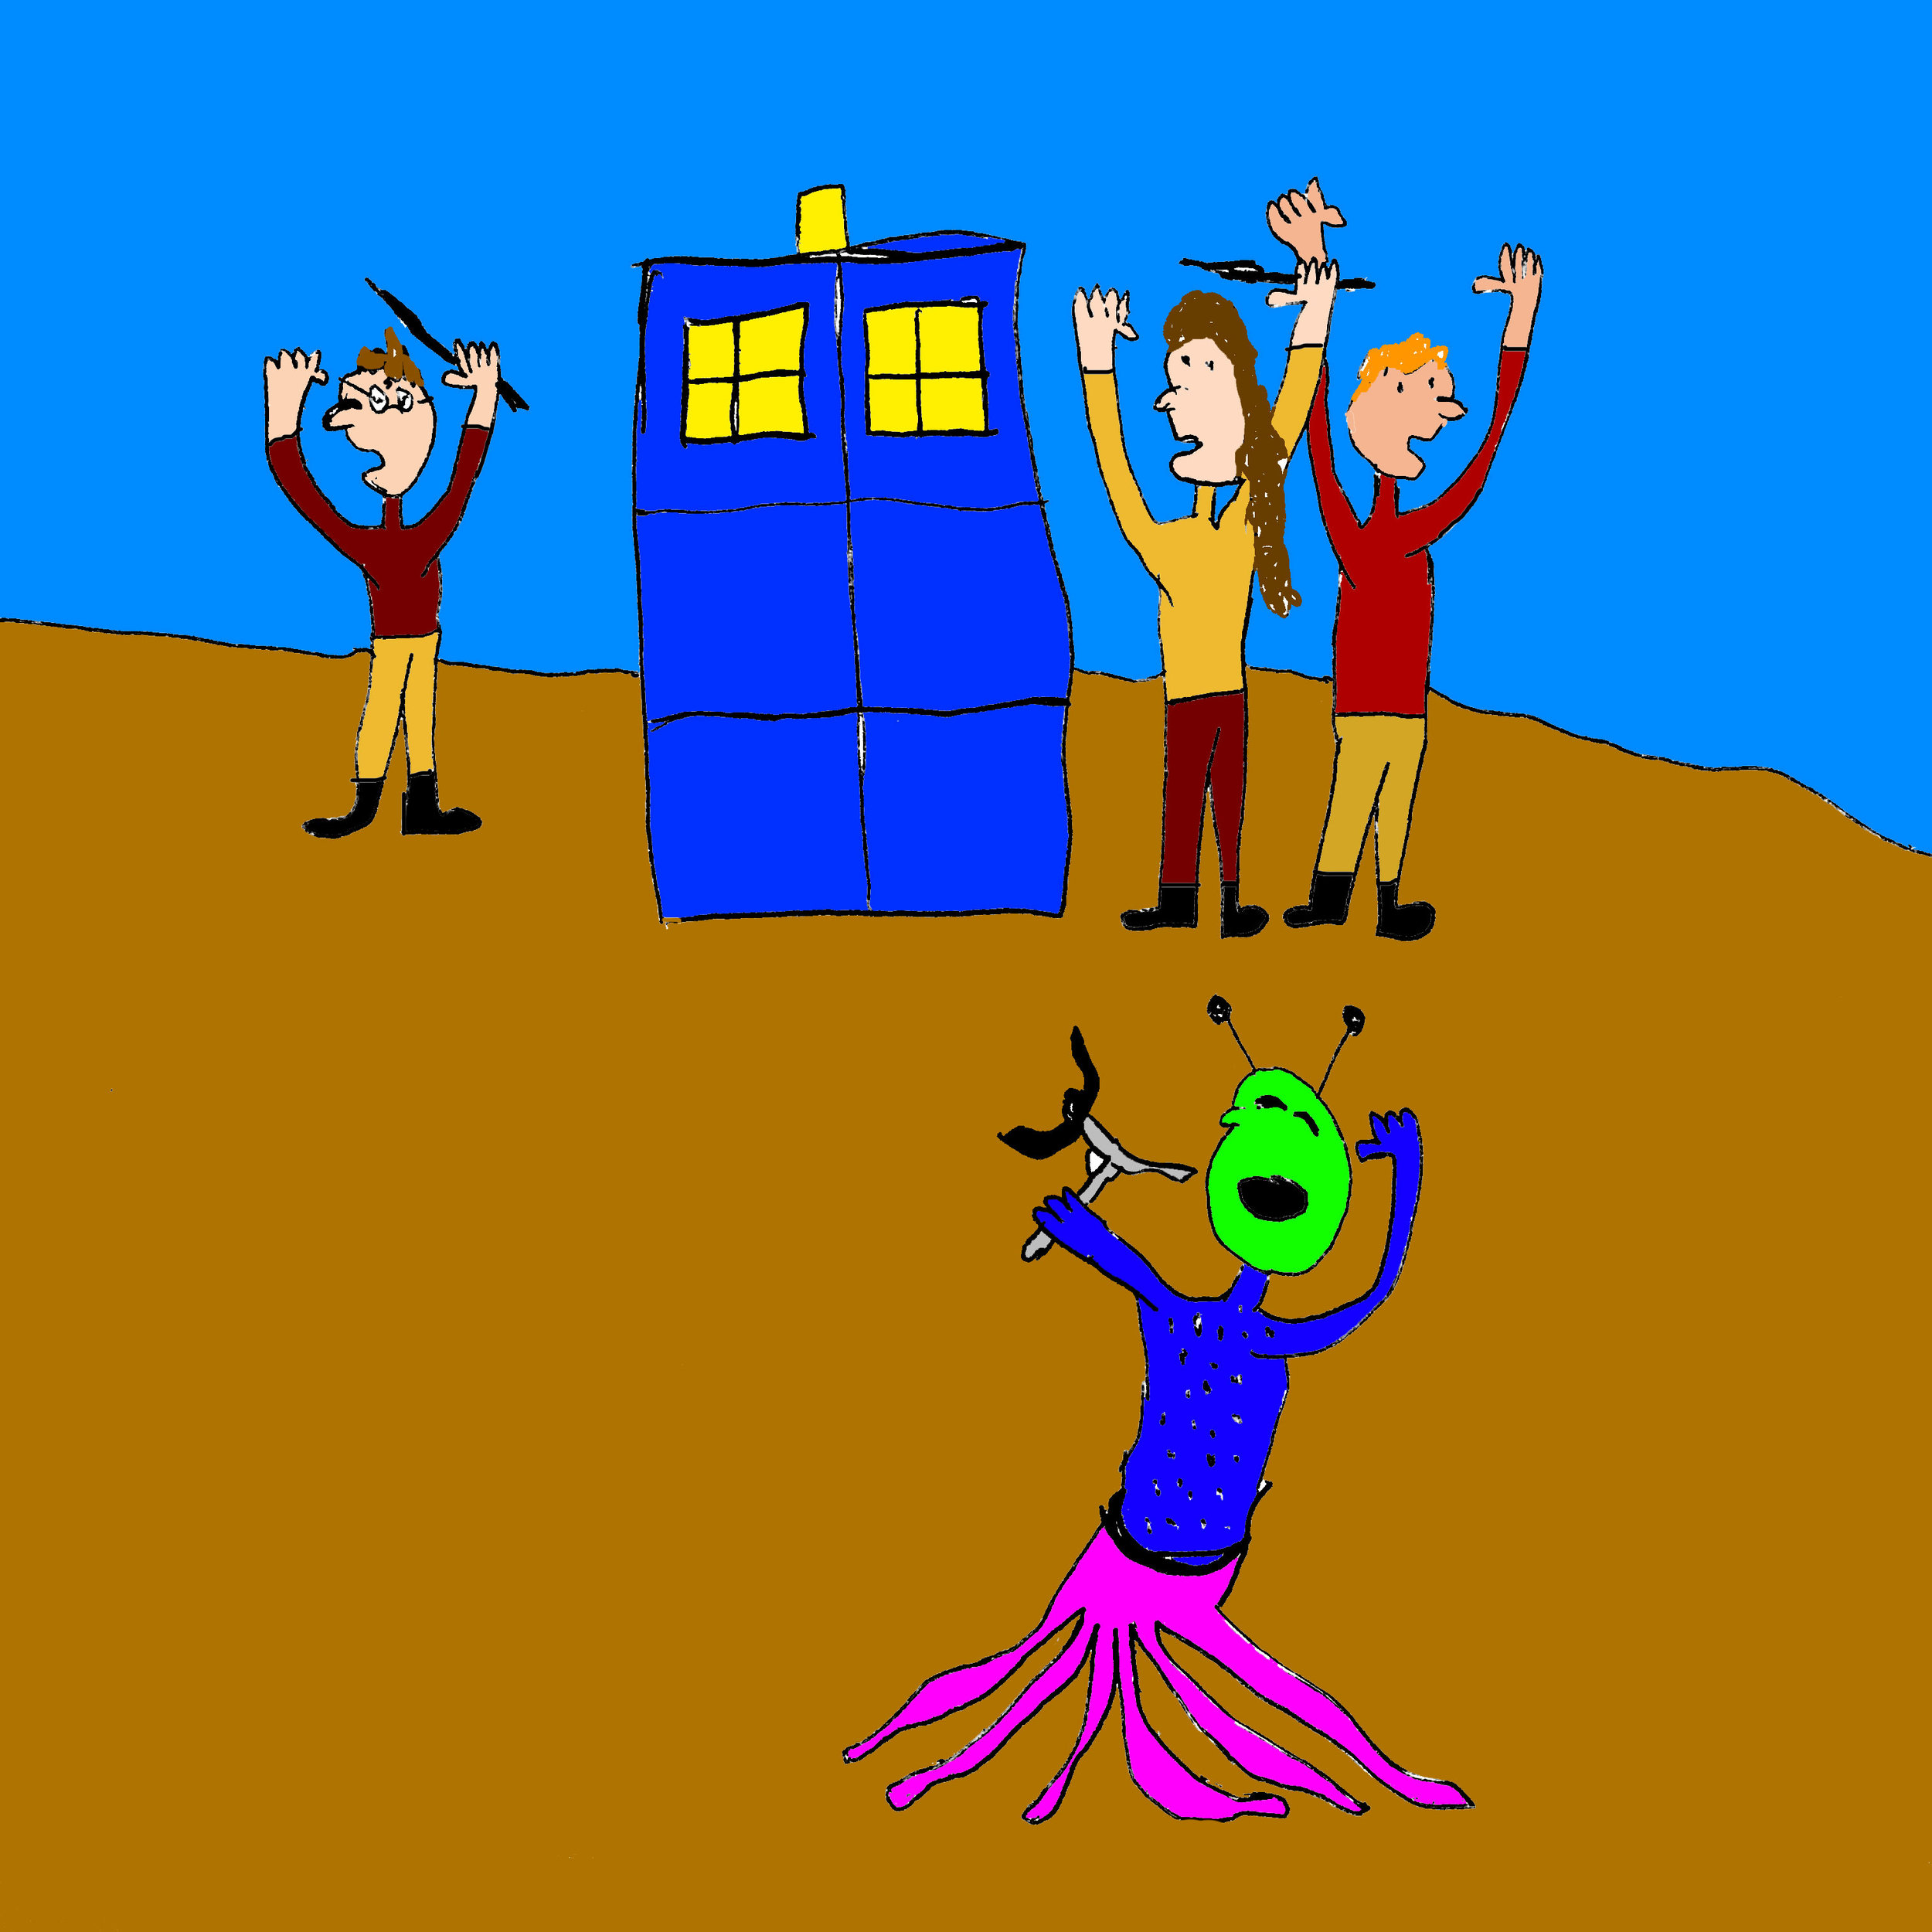 Harry, Ron, and Hermione find a Tardis